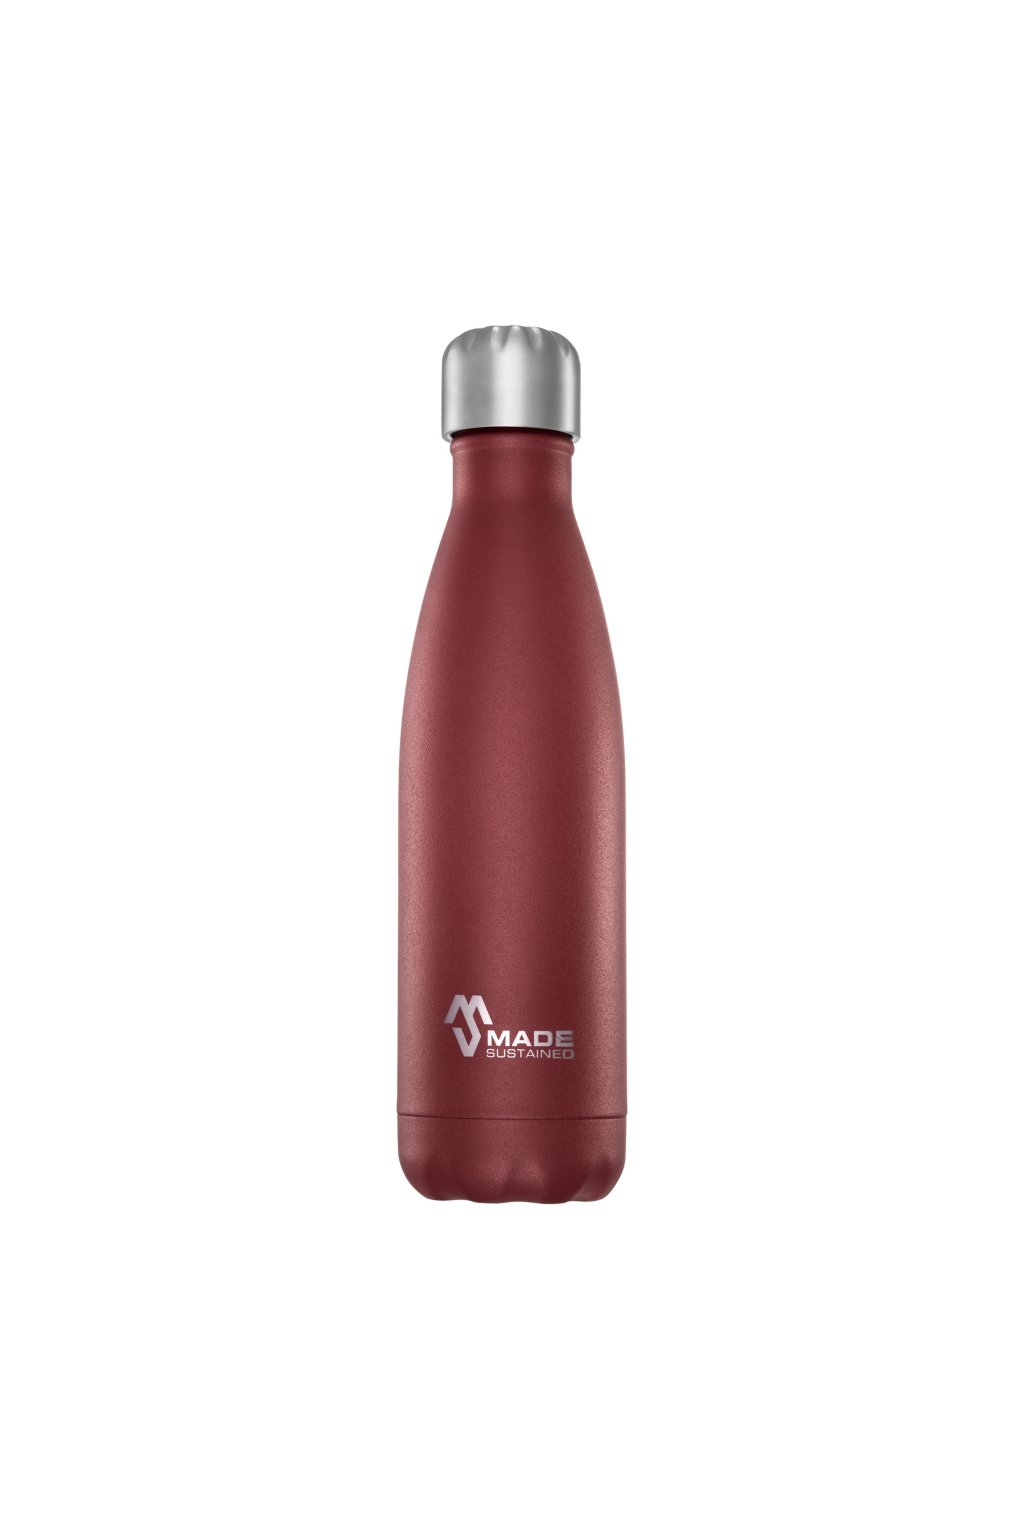 Made Sustained 500ml insulated Knight bottle Bordeaux red (002)